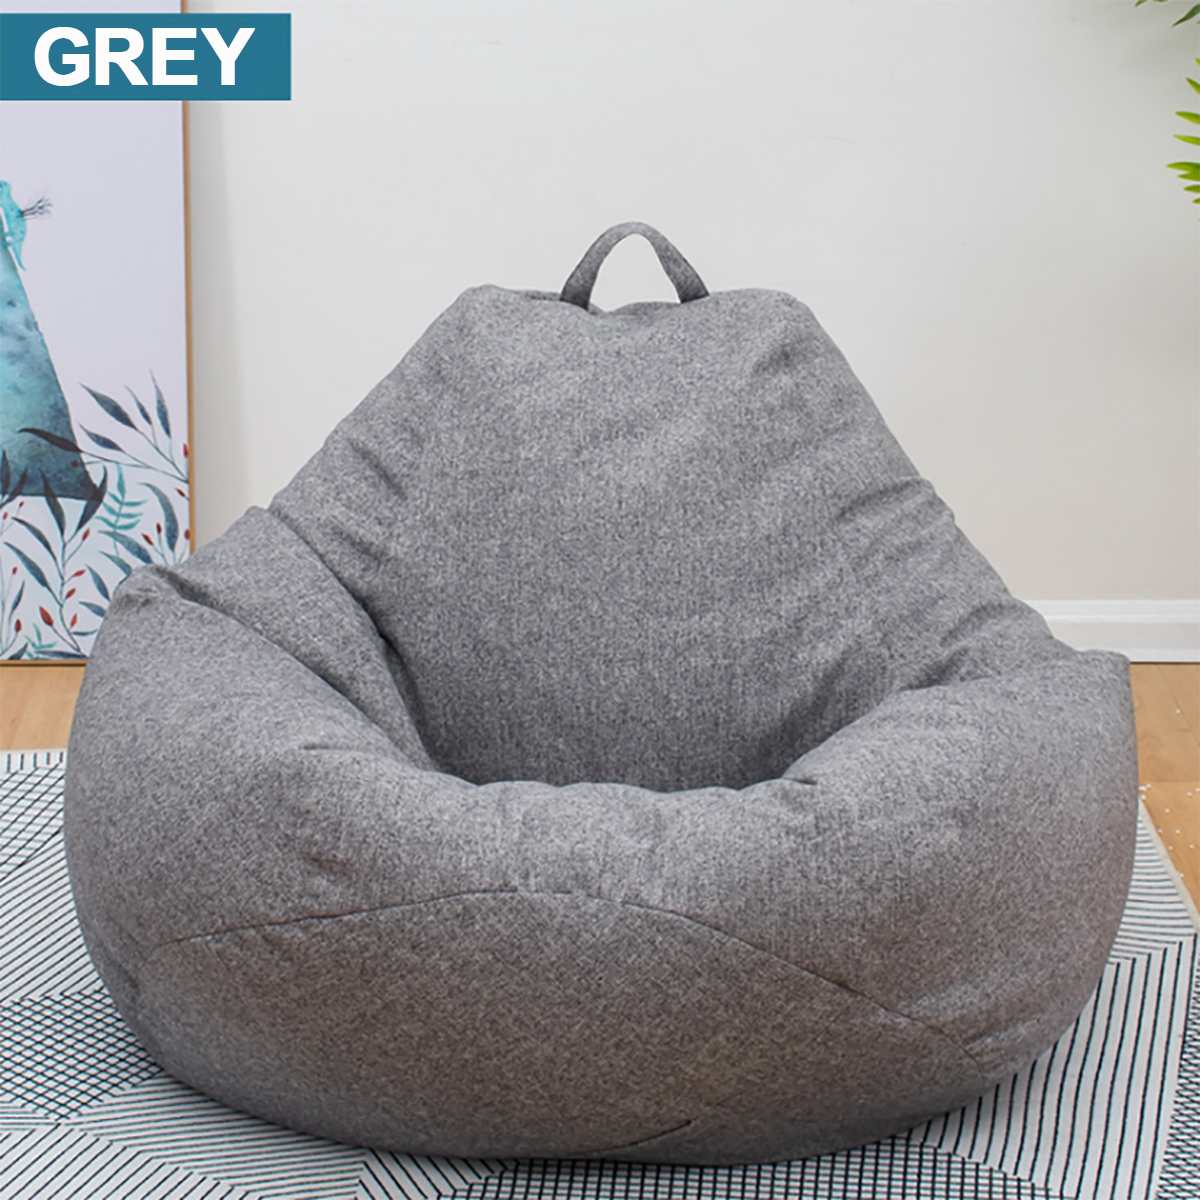 Tremendous Large Small Lazy Beanbag Sofas Cover Chairs Without Filler Linen Cloth Lounger Seat Bean Bag Pouf Puff Couch Tatami Living Room Dailytribune Chair Design For Home Dailytribuneorg